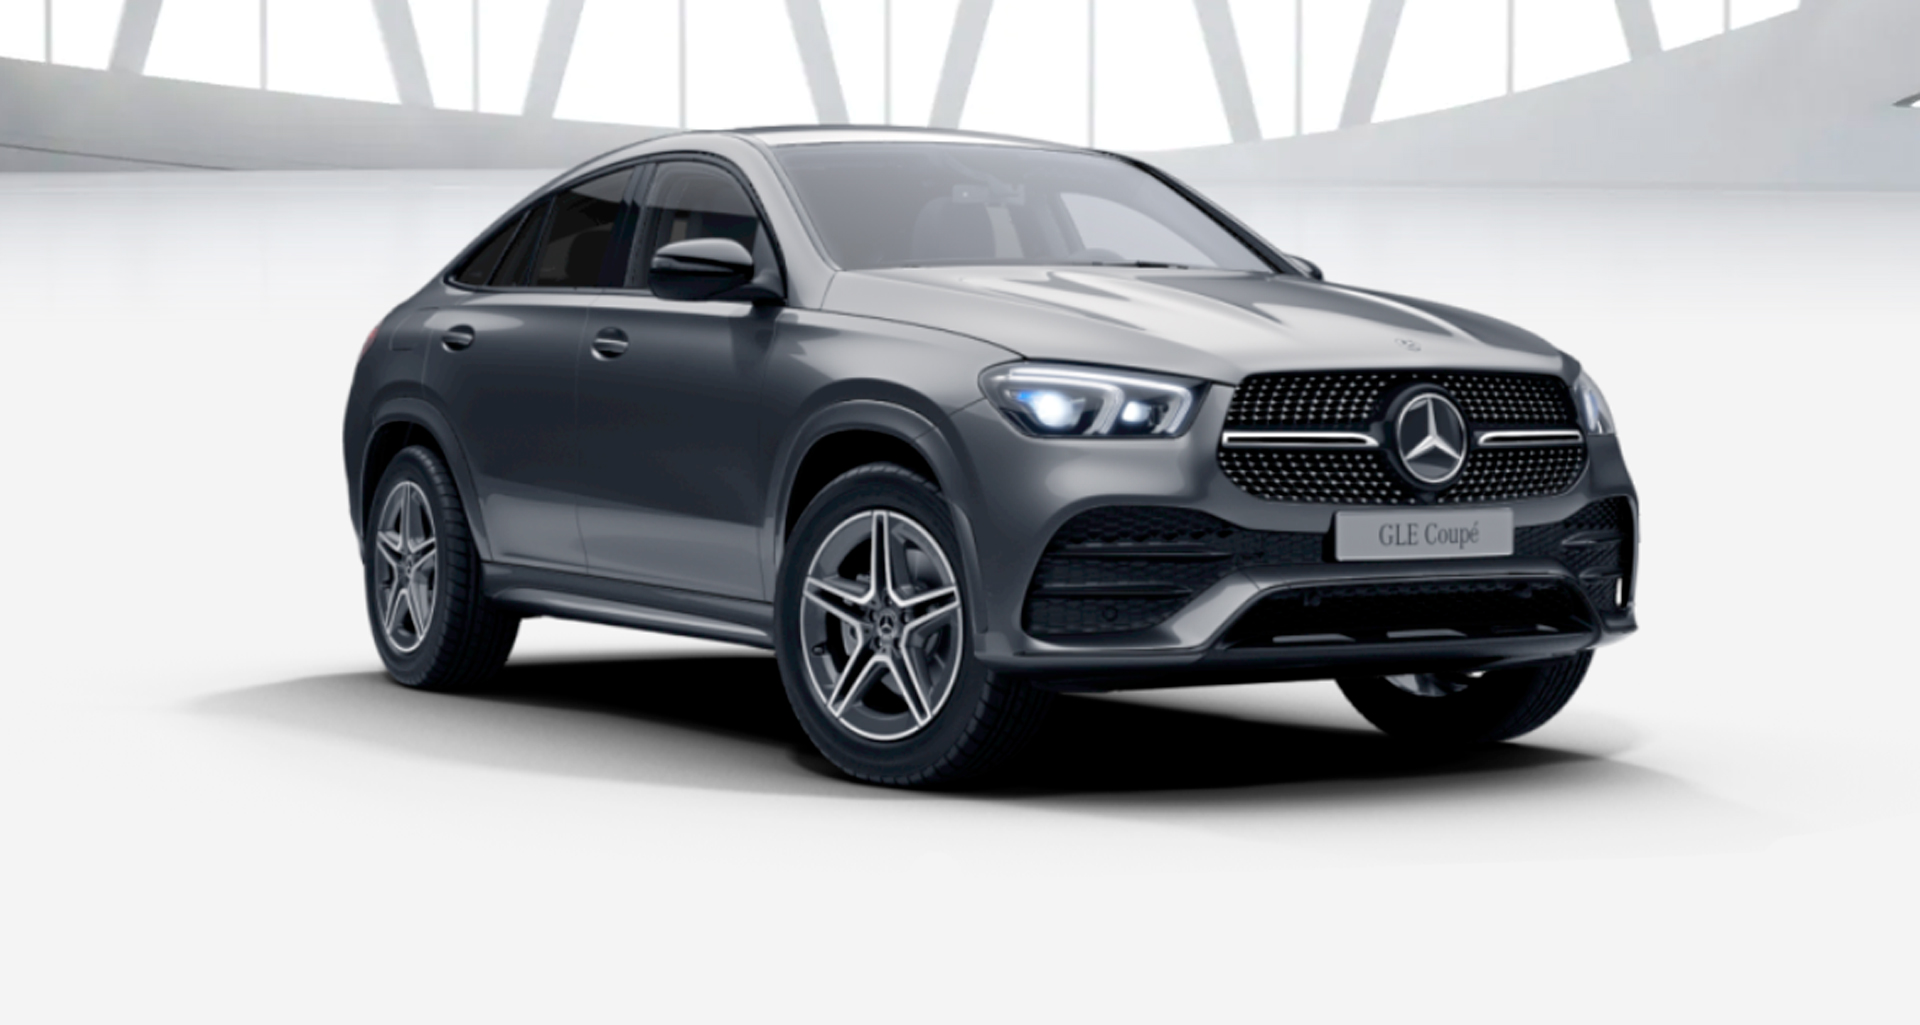 Mercedes-Benz GLE Coupe 0152600534 (Гибрид)